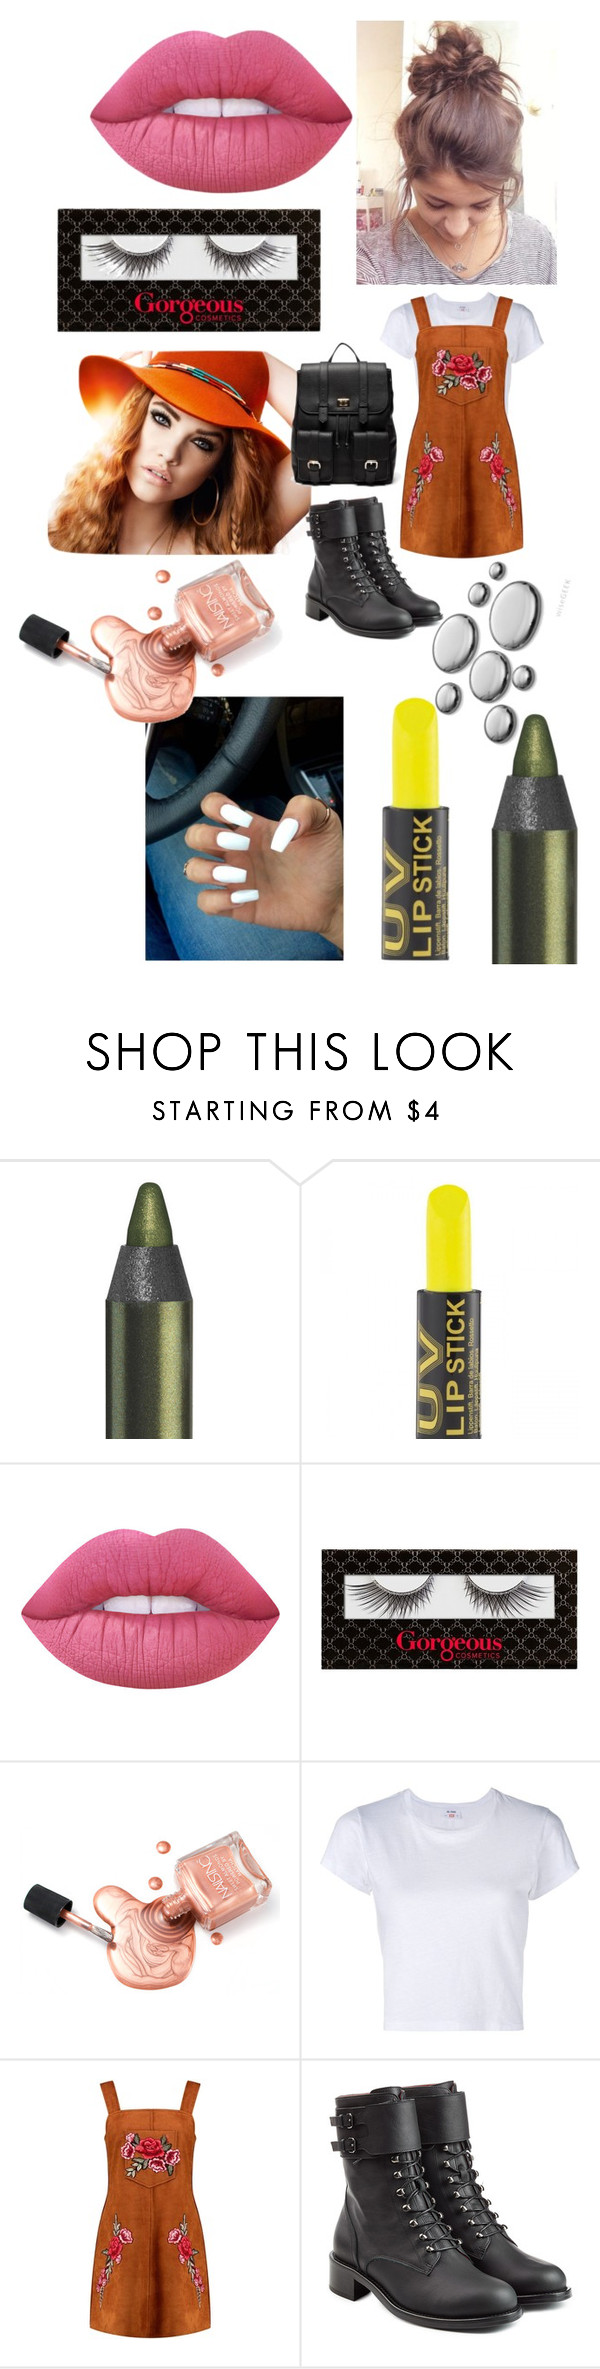 """Summer heat"" by wanderwonderadventure ❤ liked on Polyvore featuring Lime Crime, RE/DONE, Boohoo, Philosophy di Lorenzo Serafini and Sole Society"